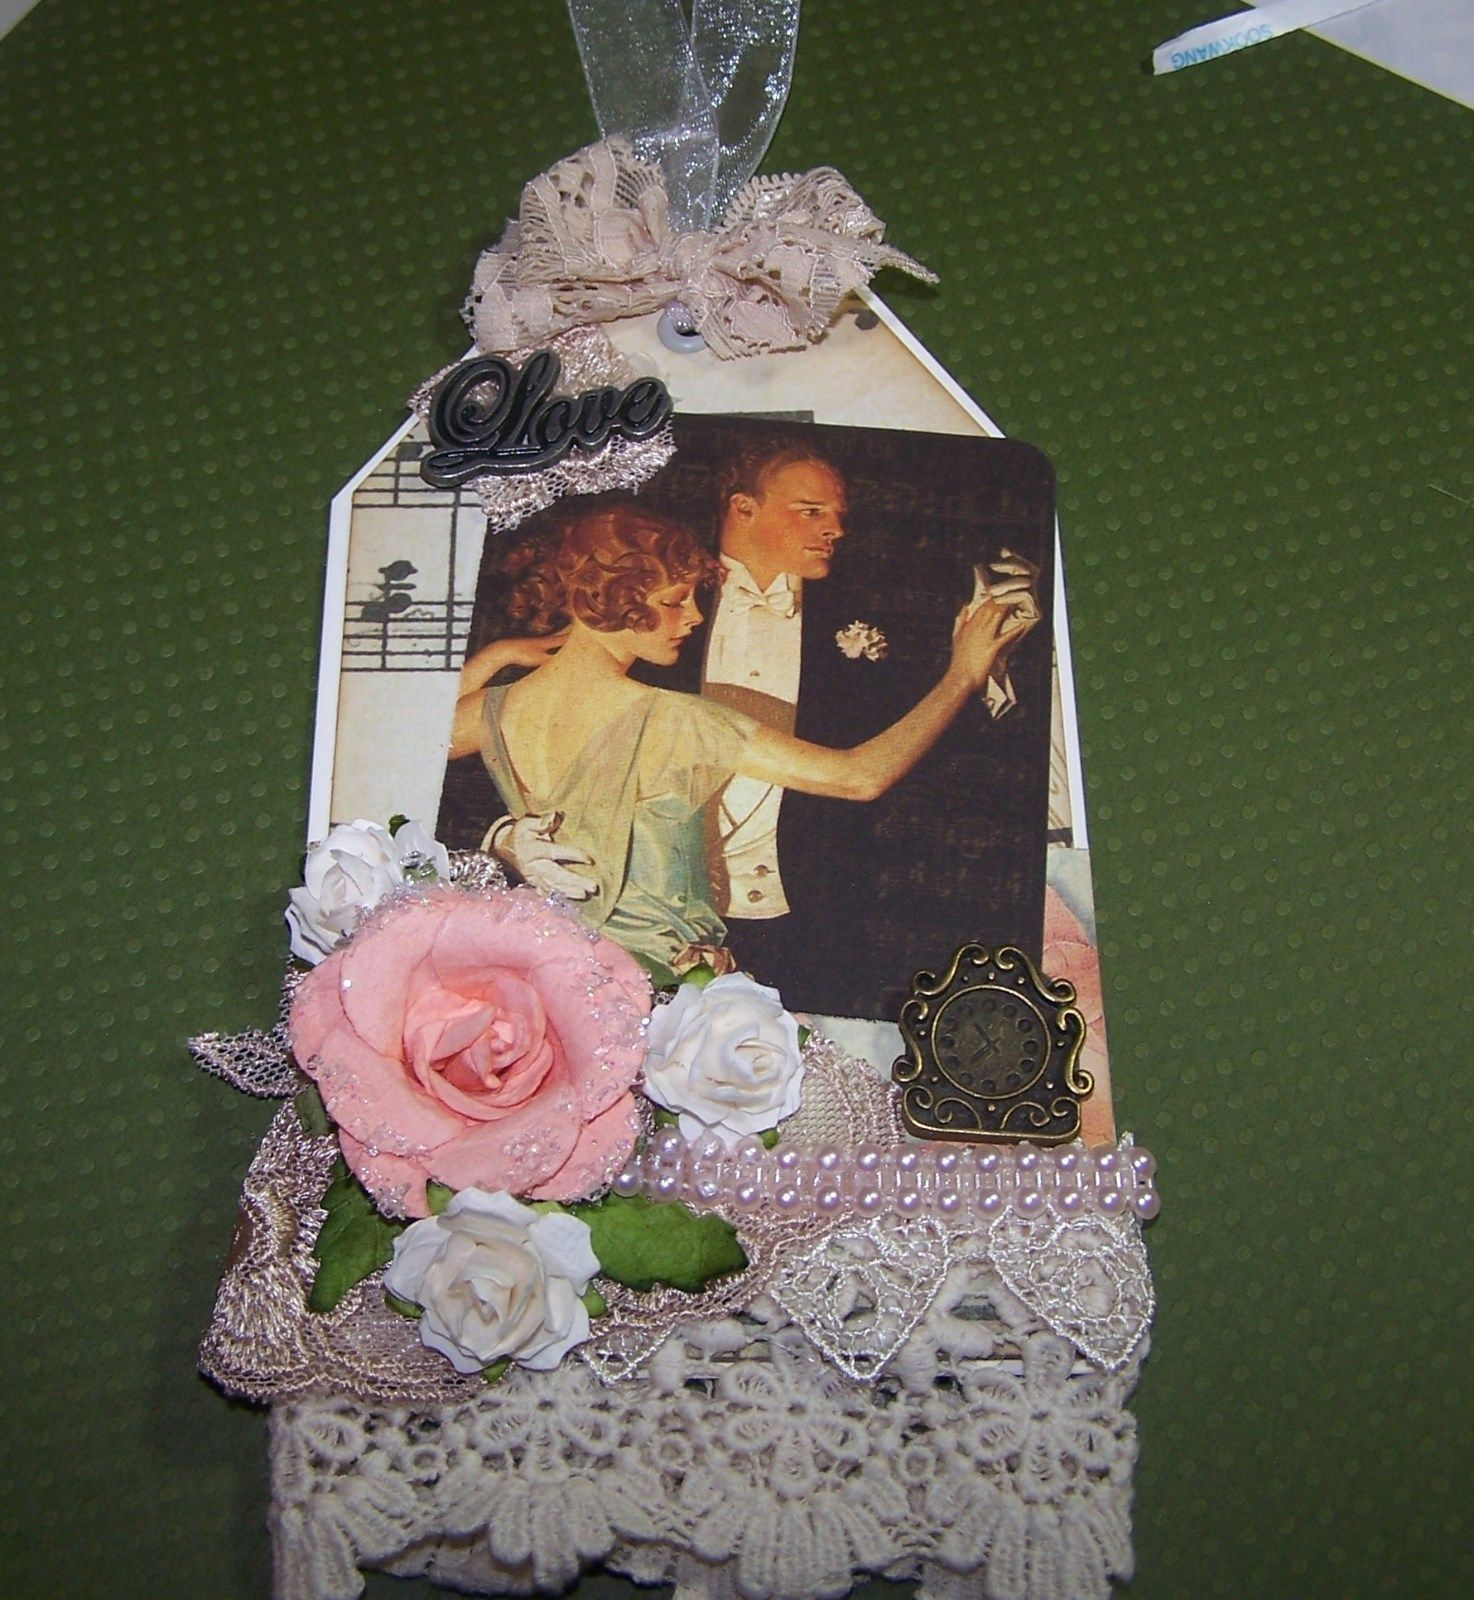 """I made this beautiful  tag for scrapbooking or gift giving. They are 3 1/2 x 6"""" without the string, and have a place for a gift card/money, note, or photo, on the back.  Much more fun than a ol' card. I have several on ebay for sale right now. Take a look.   http://www.ebay.com/itm/201344032960?ssPageName=STRK:MESELX:IT&_trksid=p3984.m1555.l2649"""